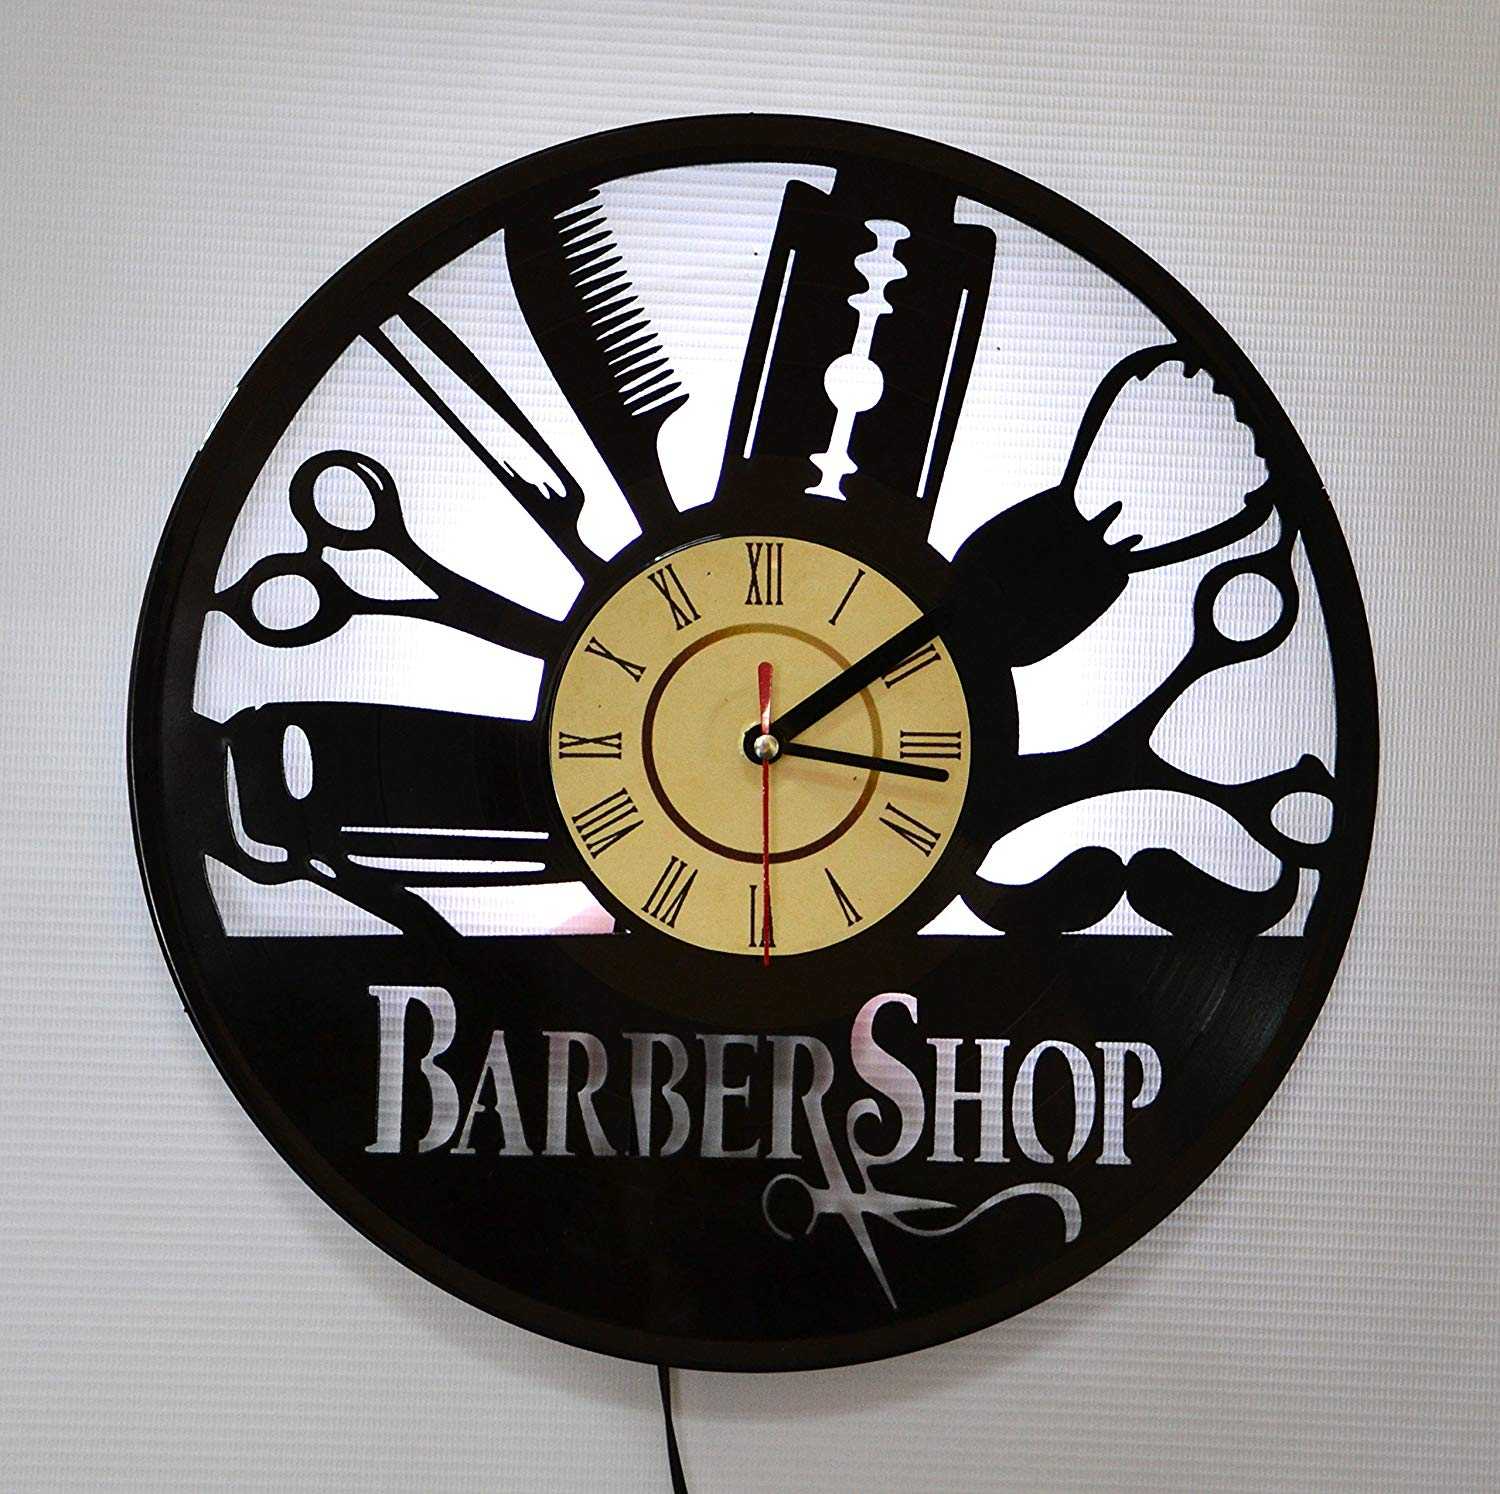 Barber Shop Hairdresser LED Backlight Vinyl Wall Clock Night Color Change Atmosphere Light Lamp Creative Classic Cool Living Room Interior Decor Led Time Clock With Color White Light